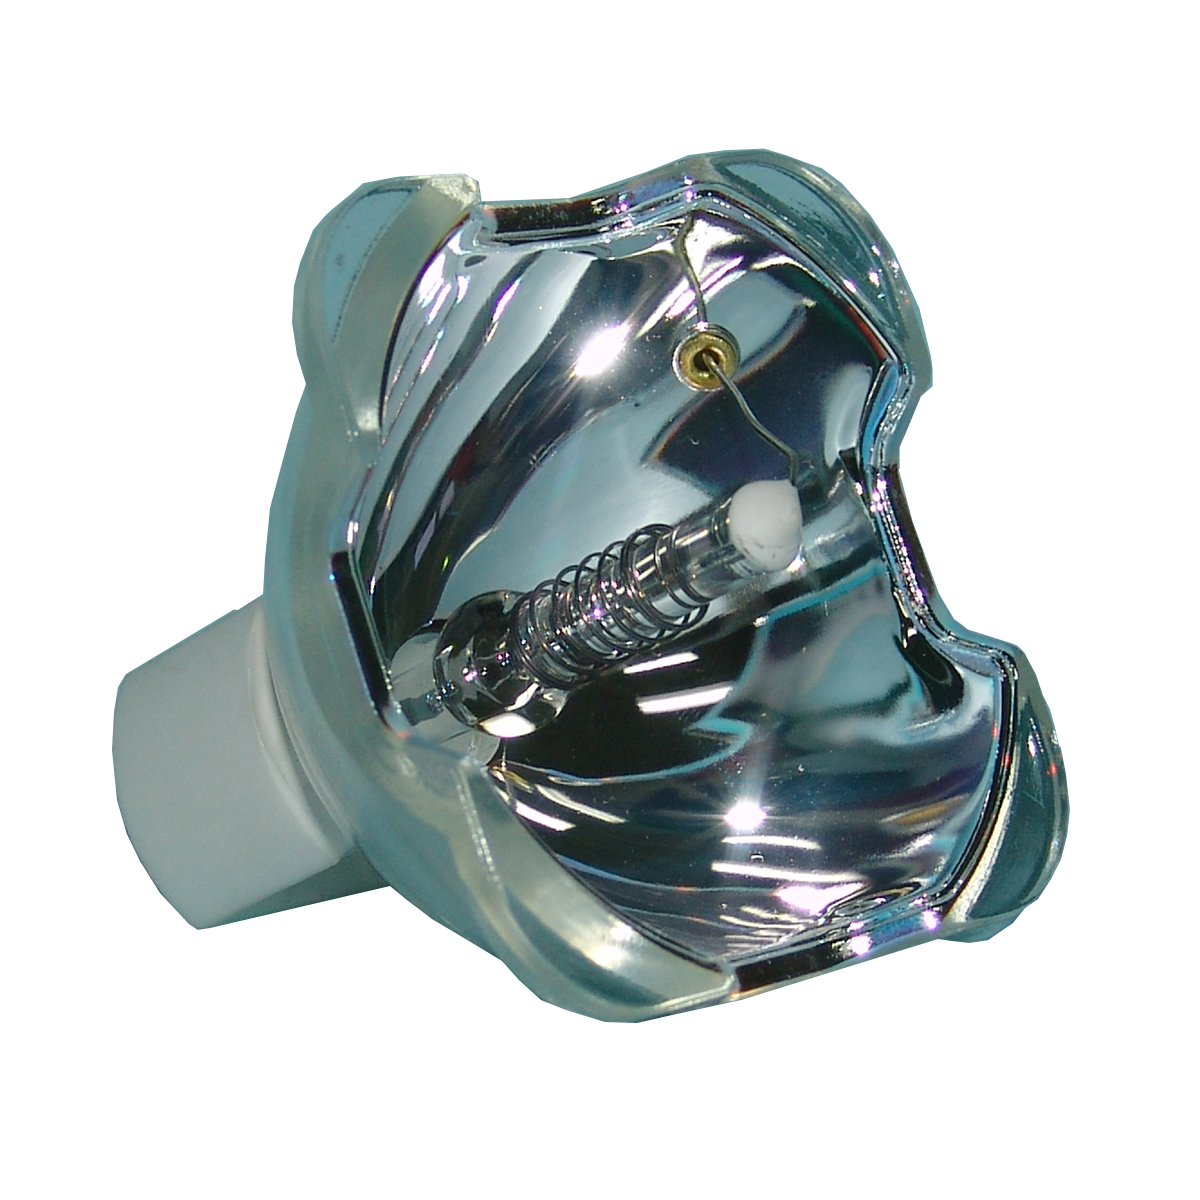 Lutema Economy for Sony VPL-F500X Projector Lamp (Bulb Only) - image 4 of 5